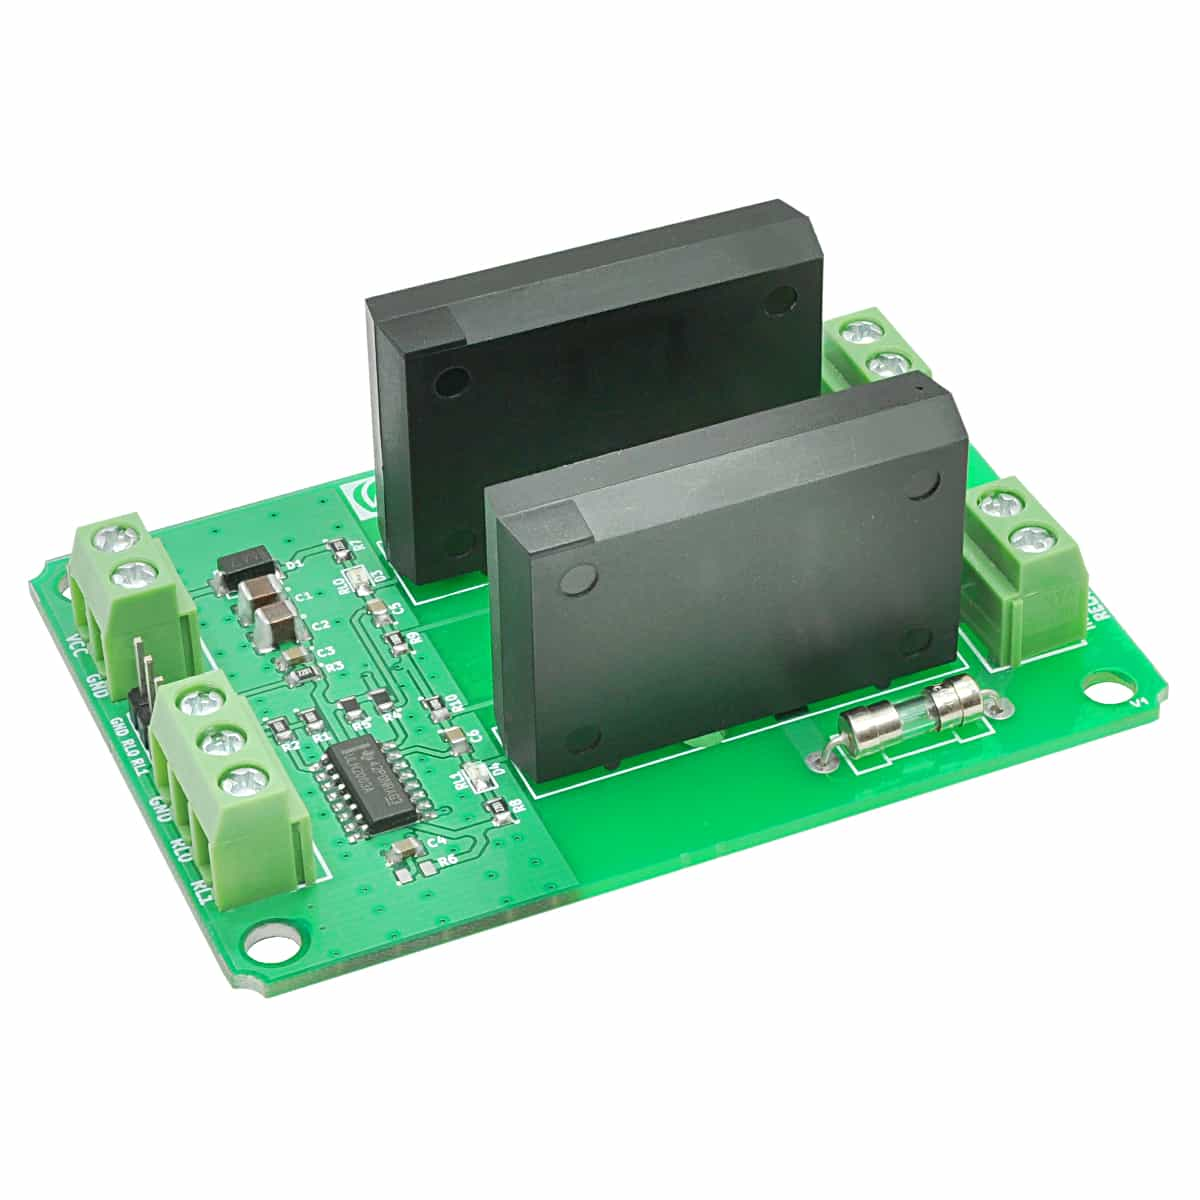 2 Channel Programmable Relay Module With Gpio Numato Lab Solid State Variable Breakout Board